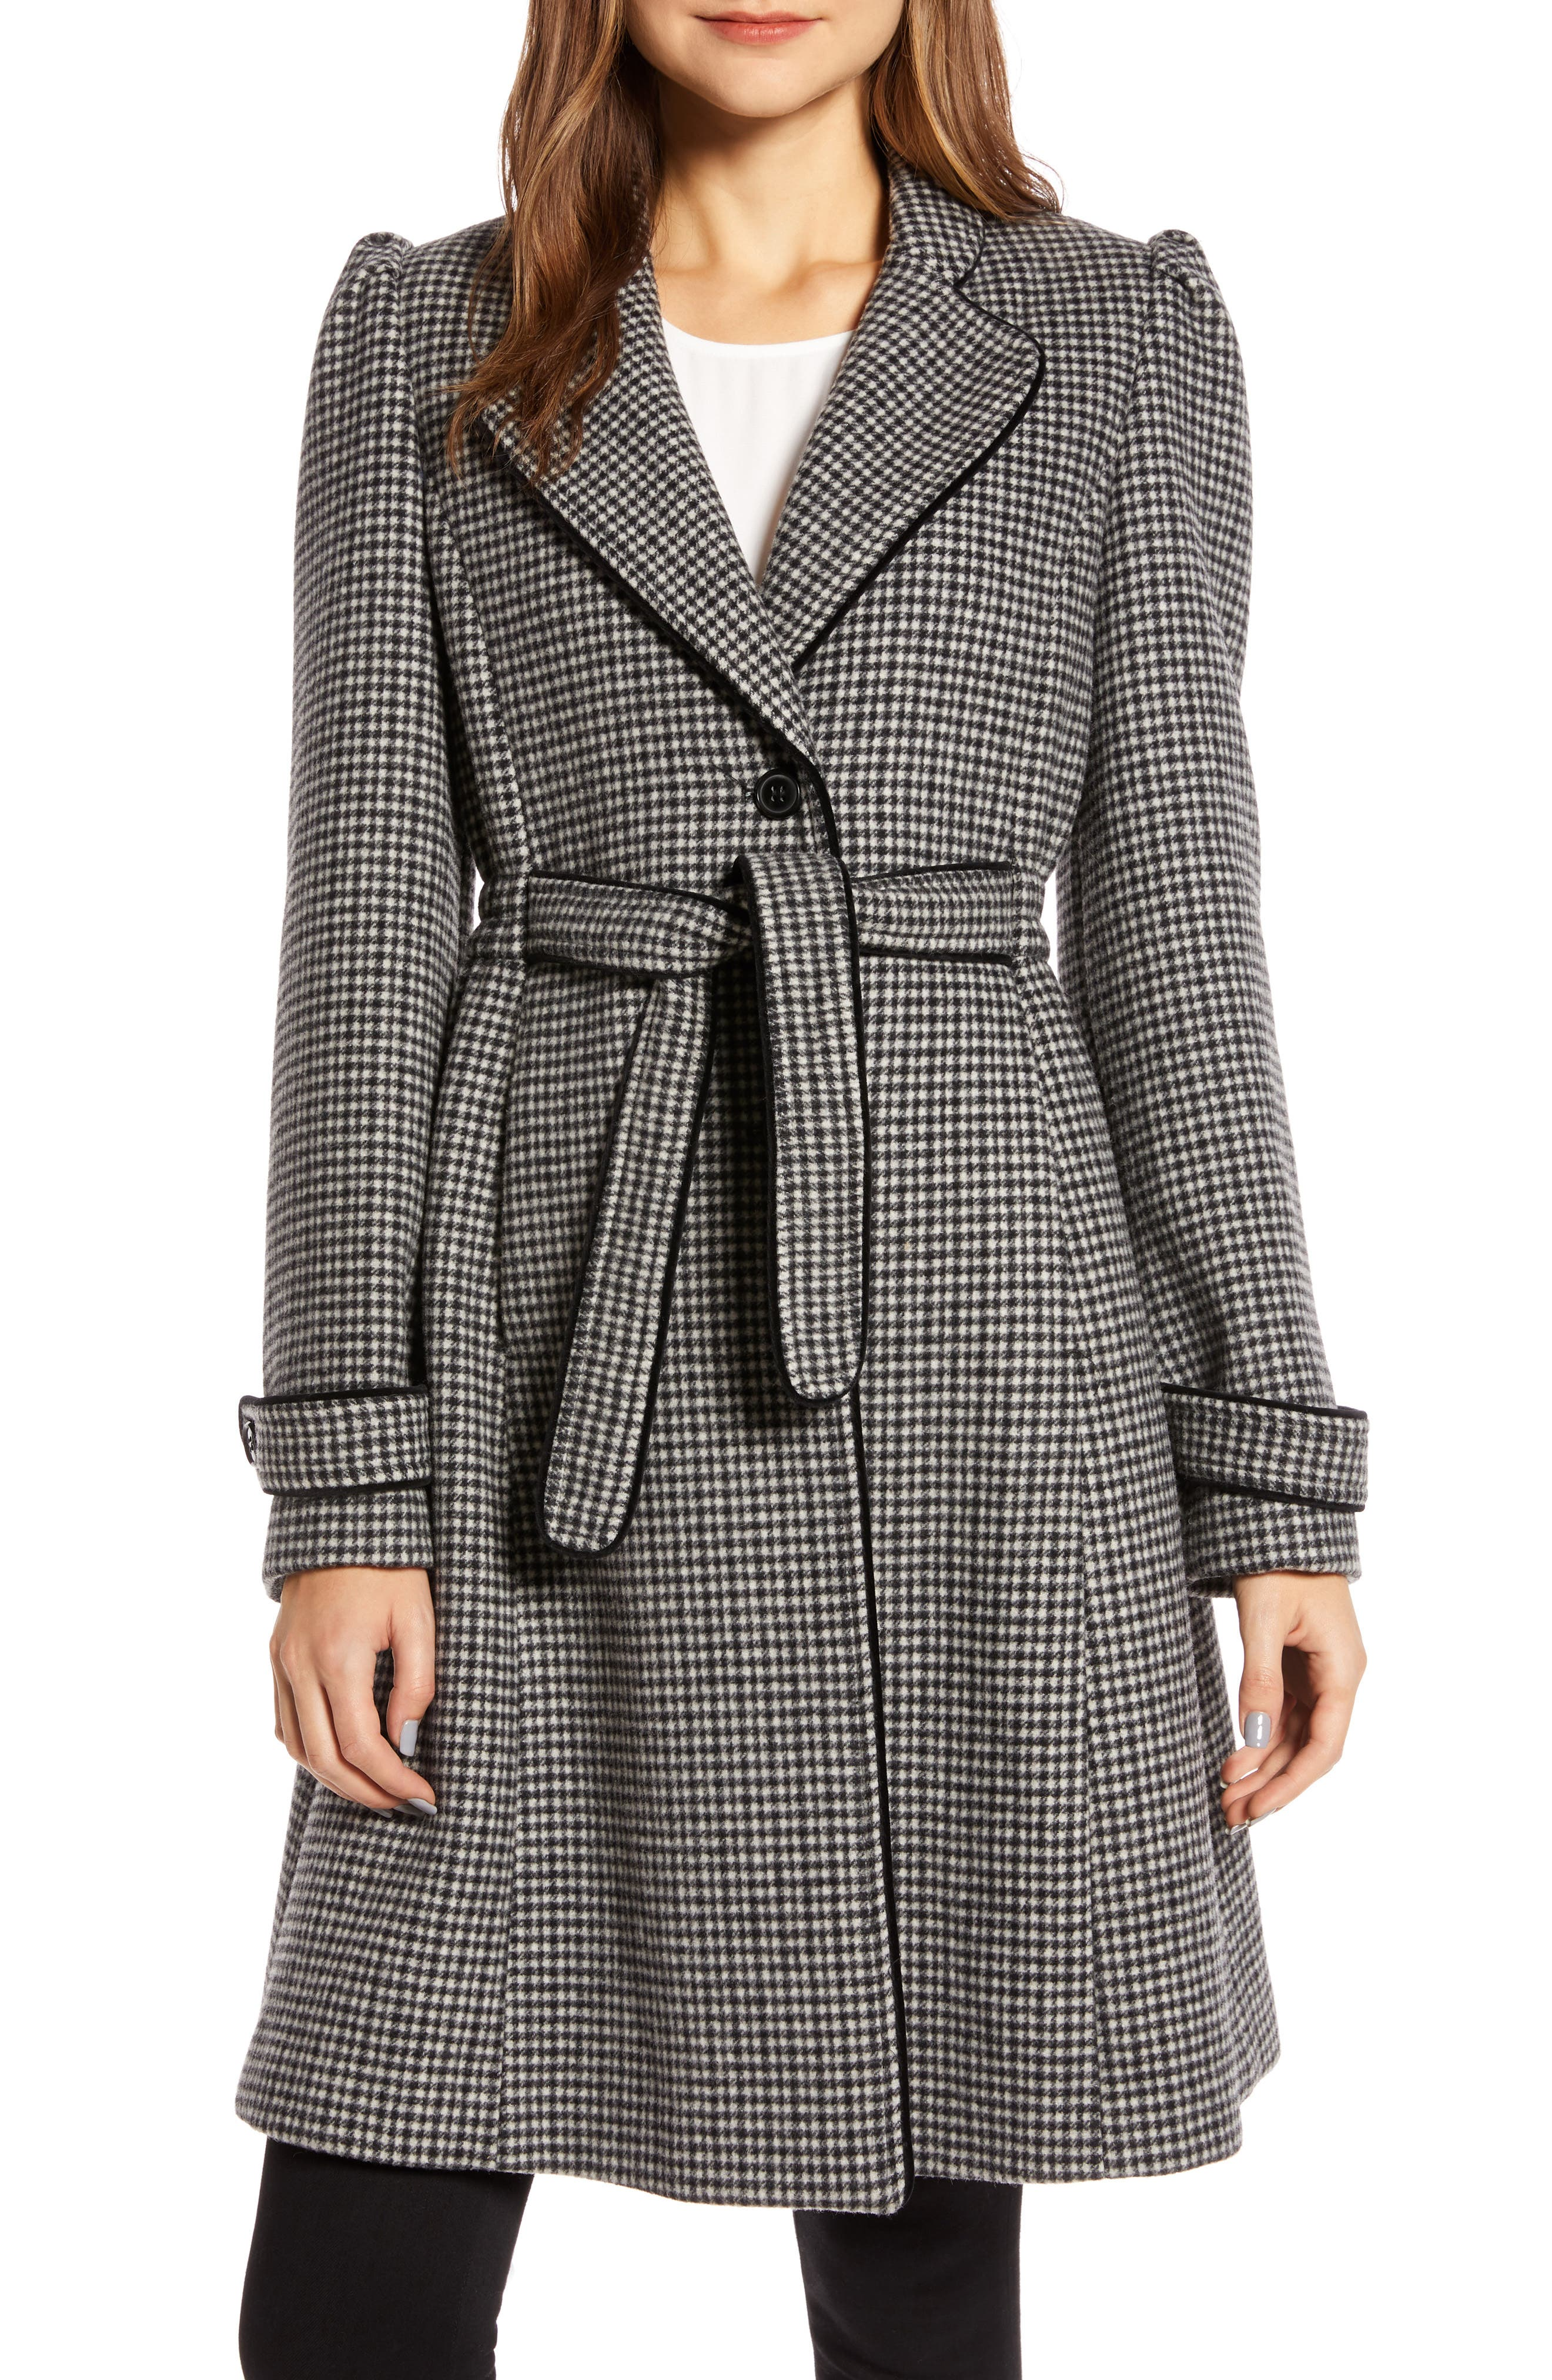 1940s Coats & Jackets Fashion History Womens Gal Meets Glam Collection Minicheck Wool Blend Coat $137.49 AT vintagedancer.com